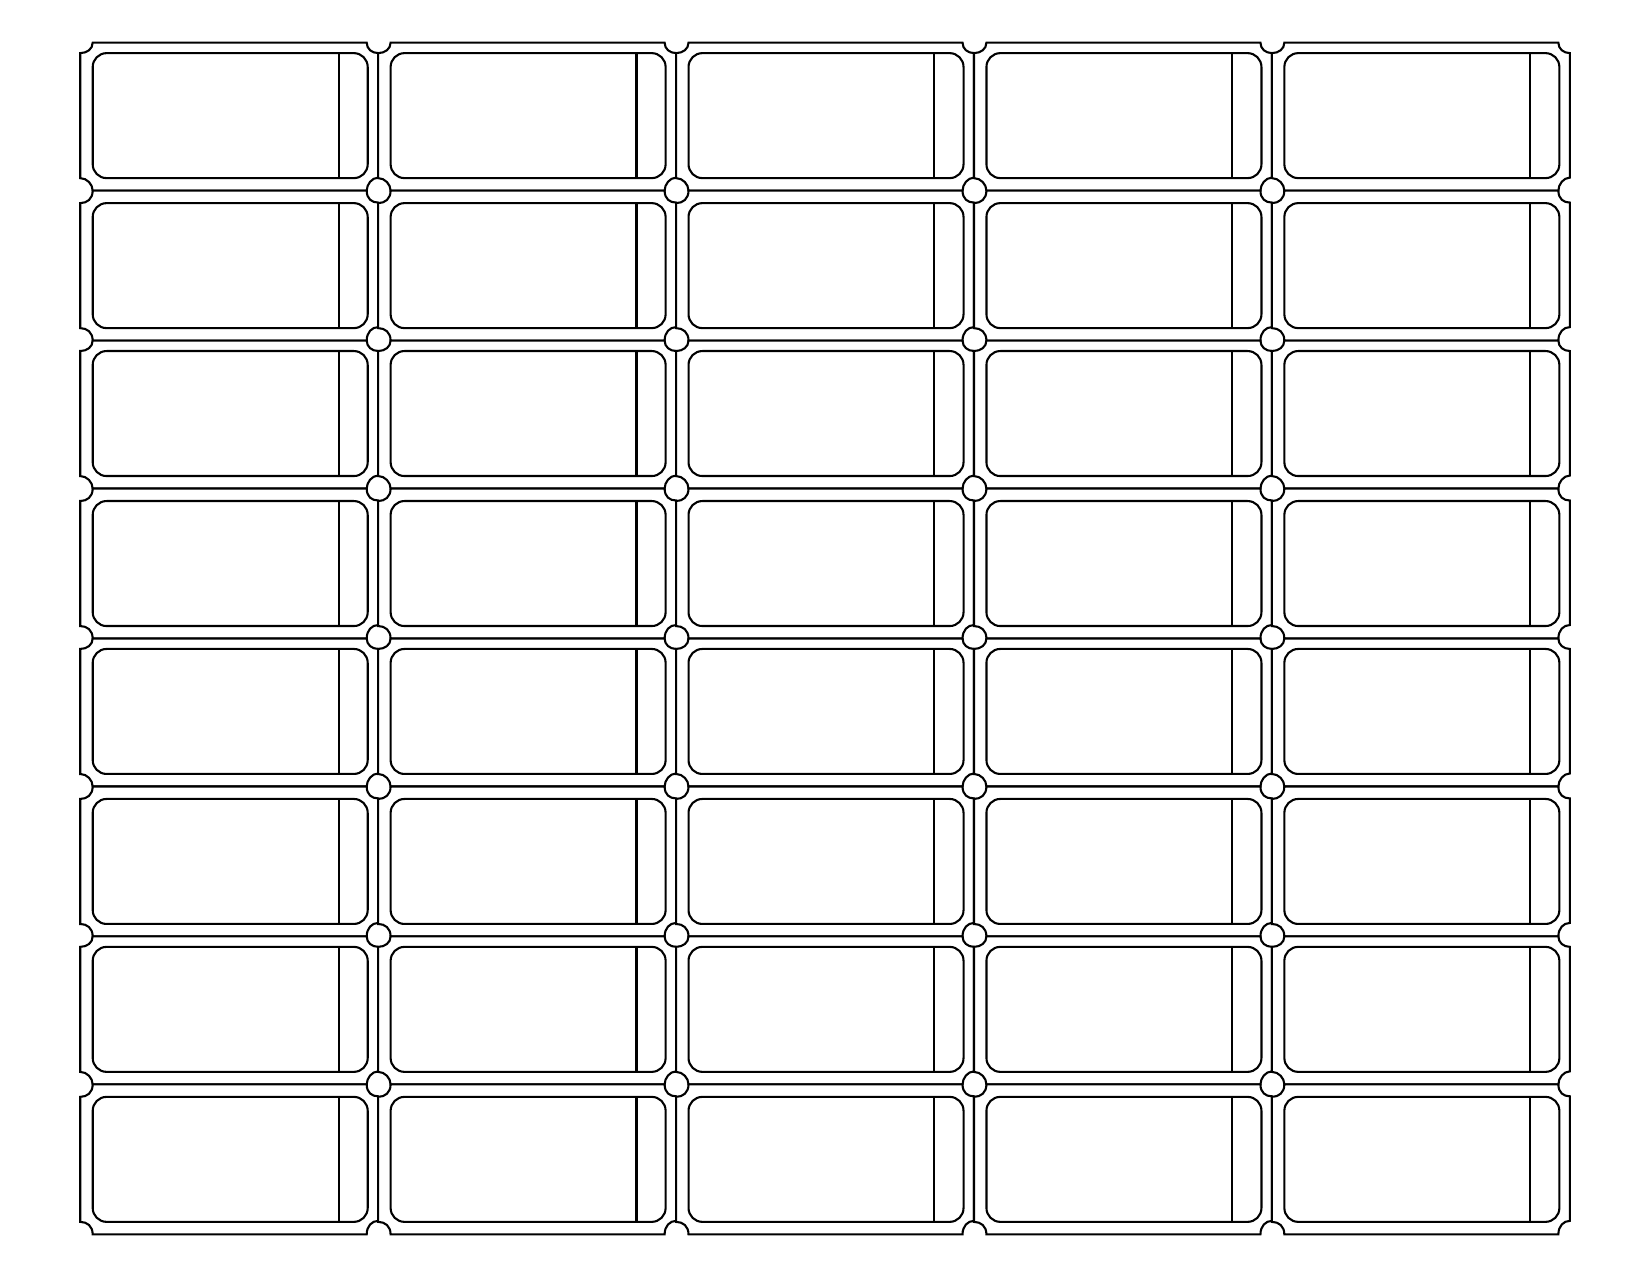 Blank Printable Raffle Ticket Template